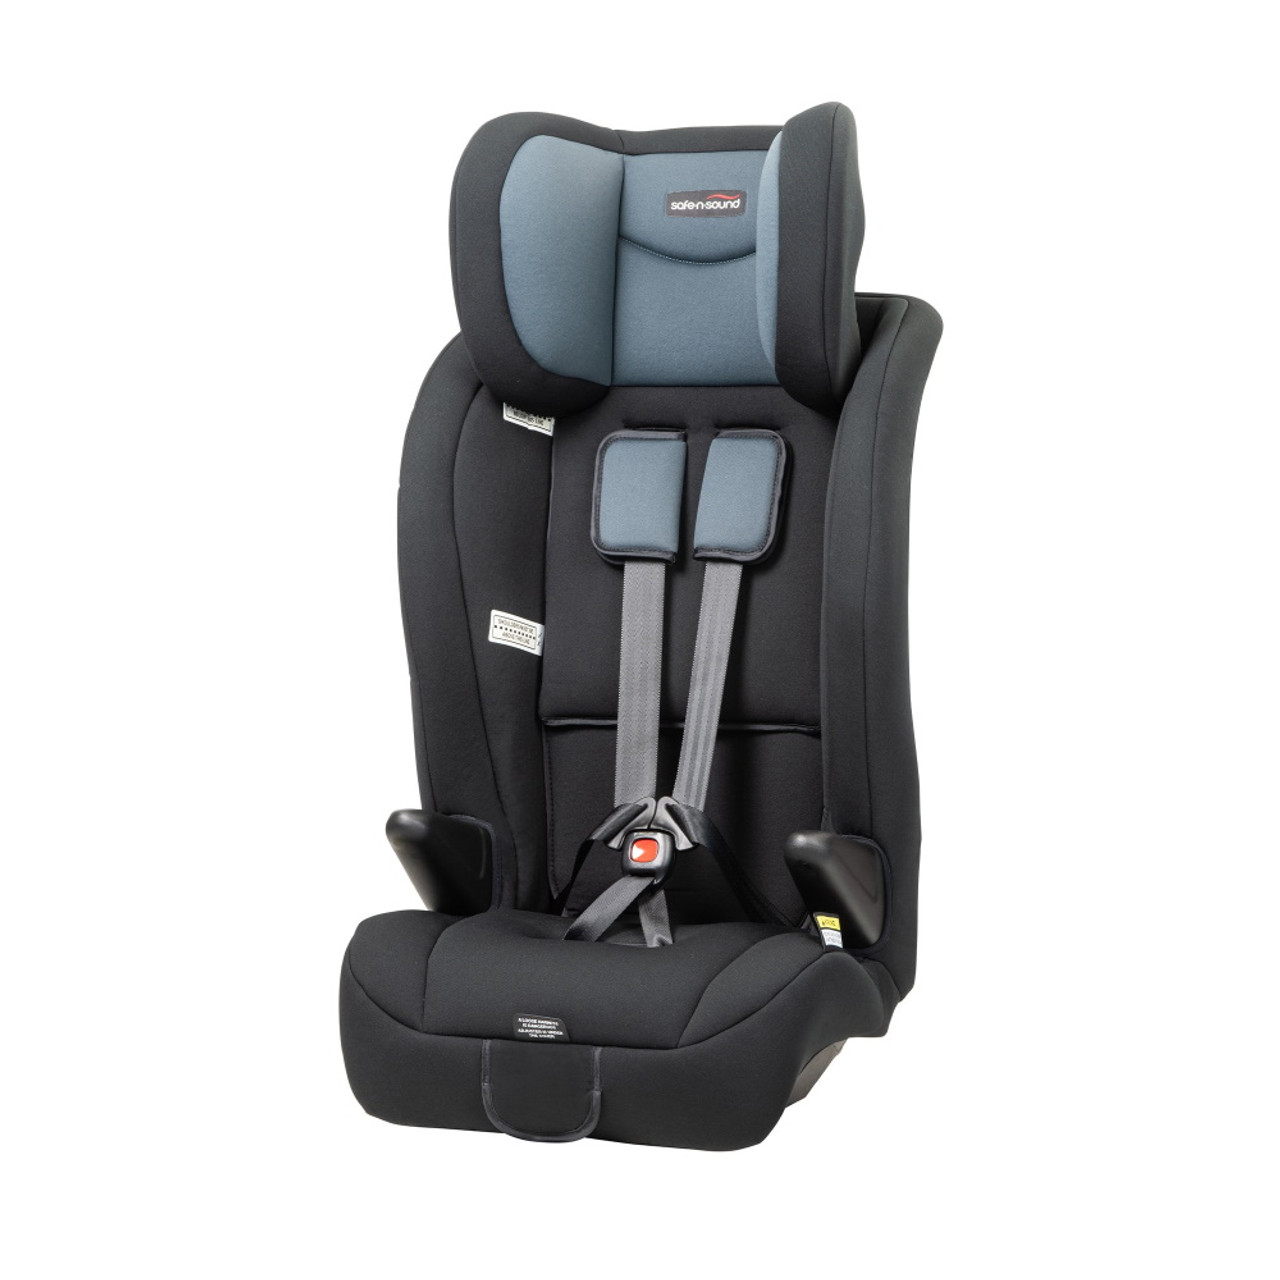 IN-BUILT HARNESS PROTECTION UP TO 8 YEARS* Grows with your child with 4 harness shoulder slot positions.